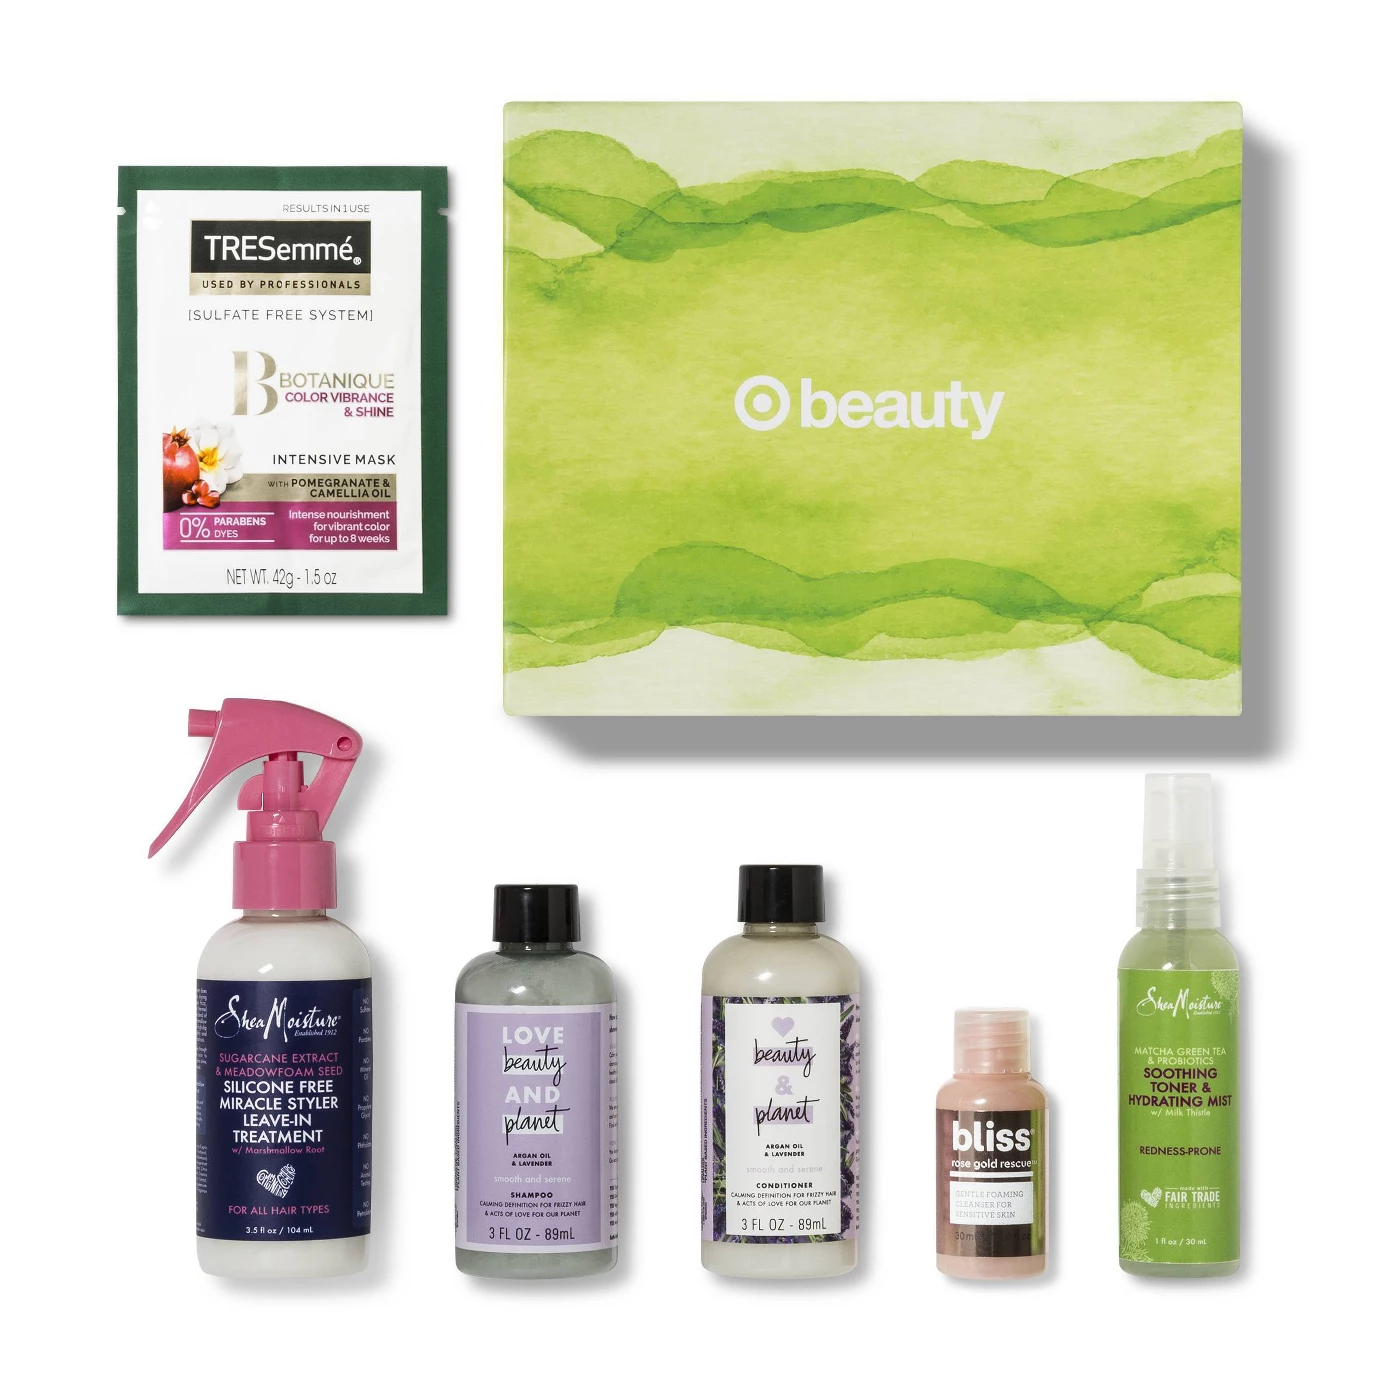 Target Beauty Box March 2019 Box Available Now – $7 Shipped!